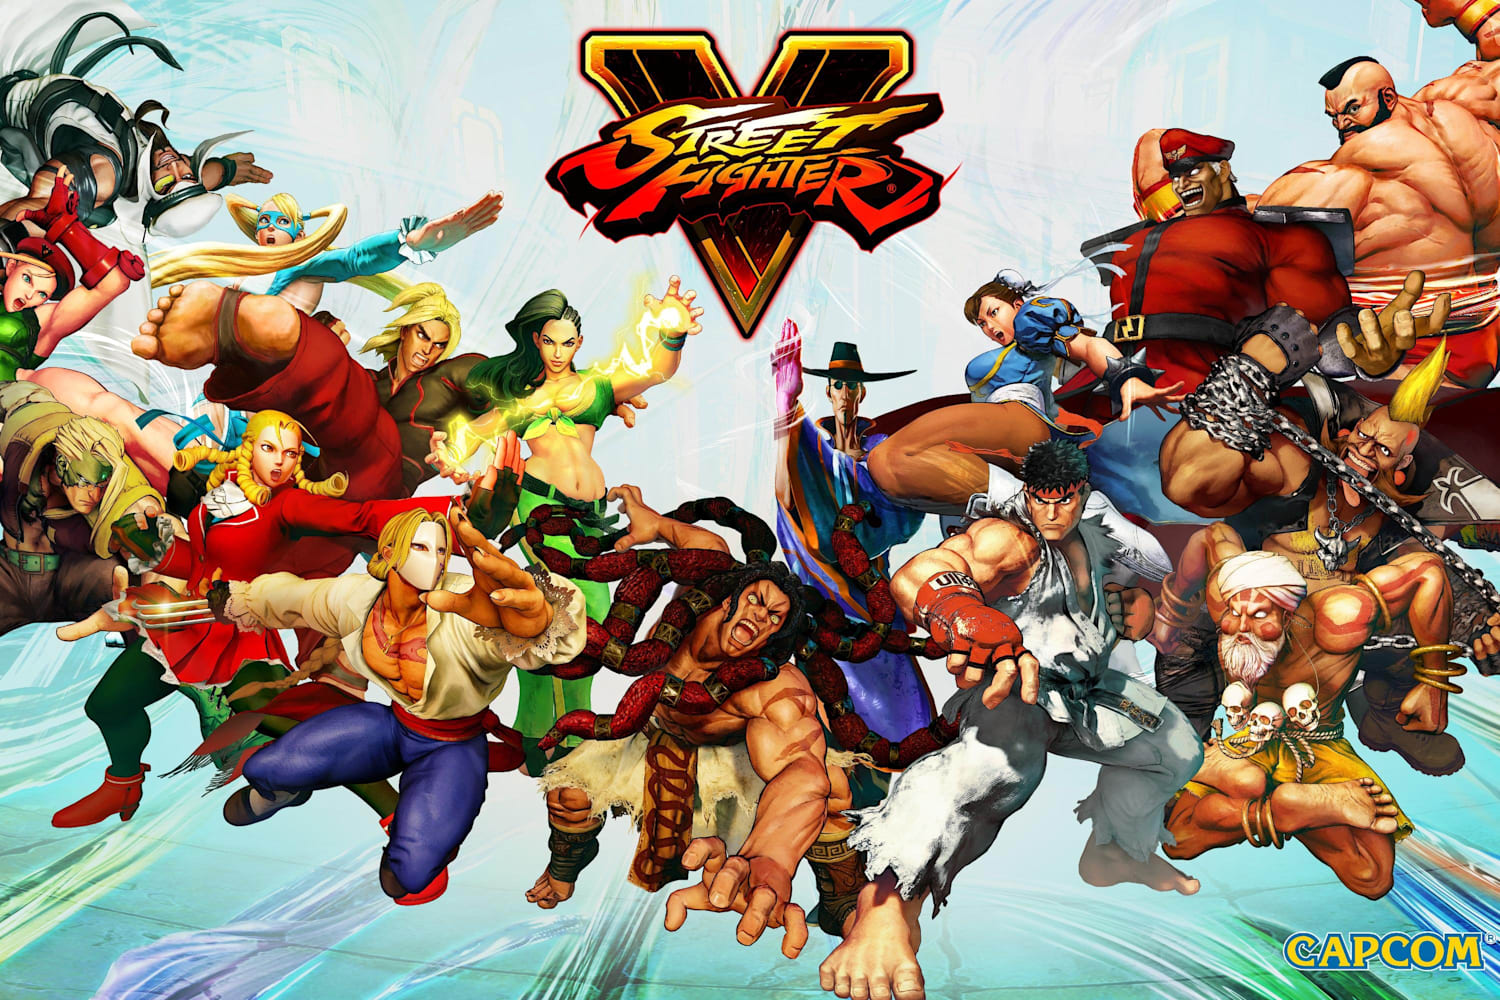 Street Fighter Players 10 Types We All Know Red Bull